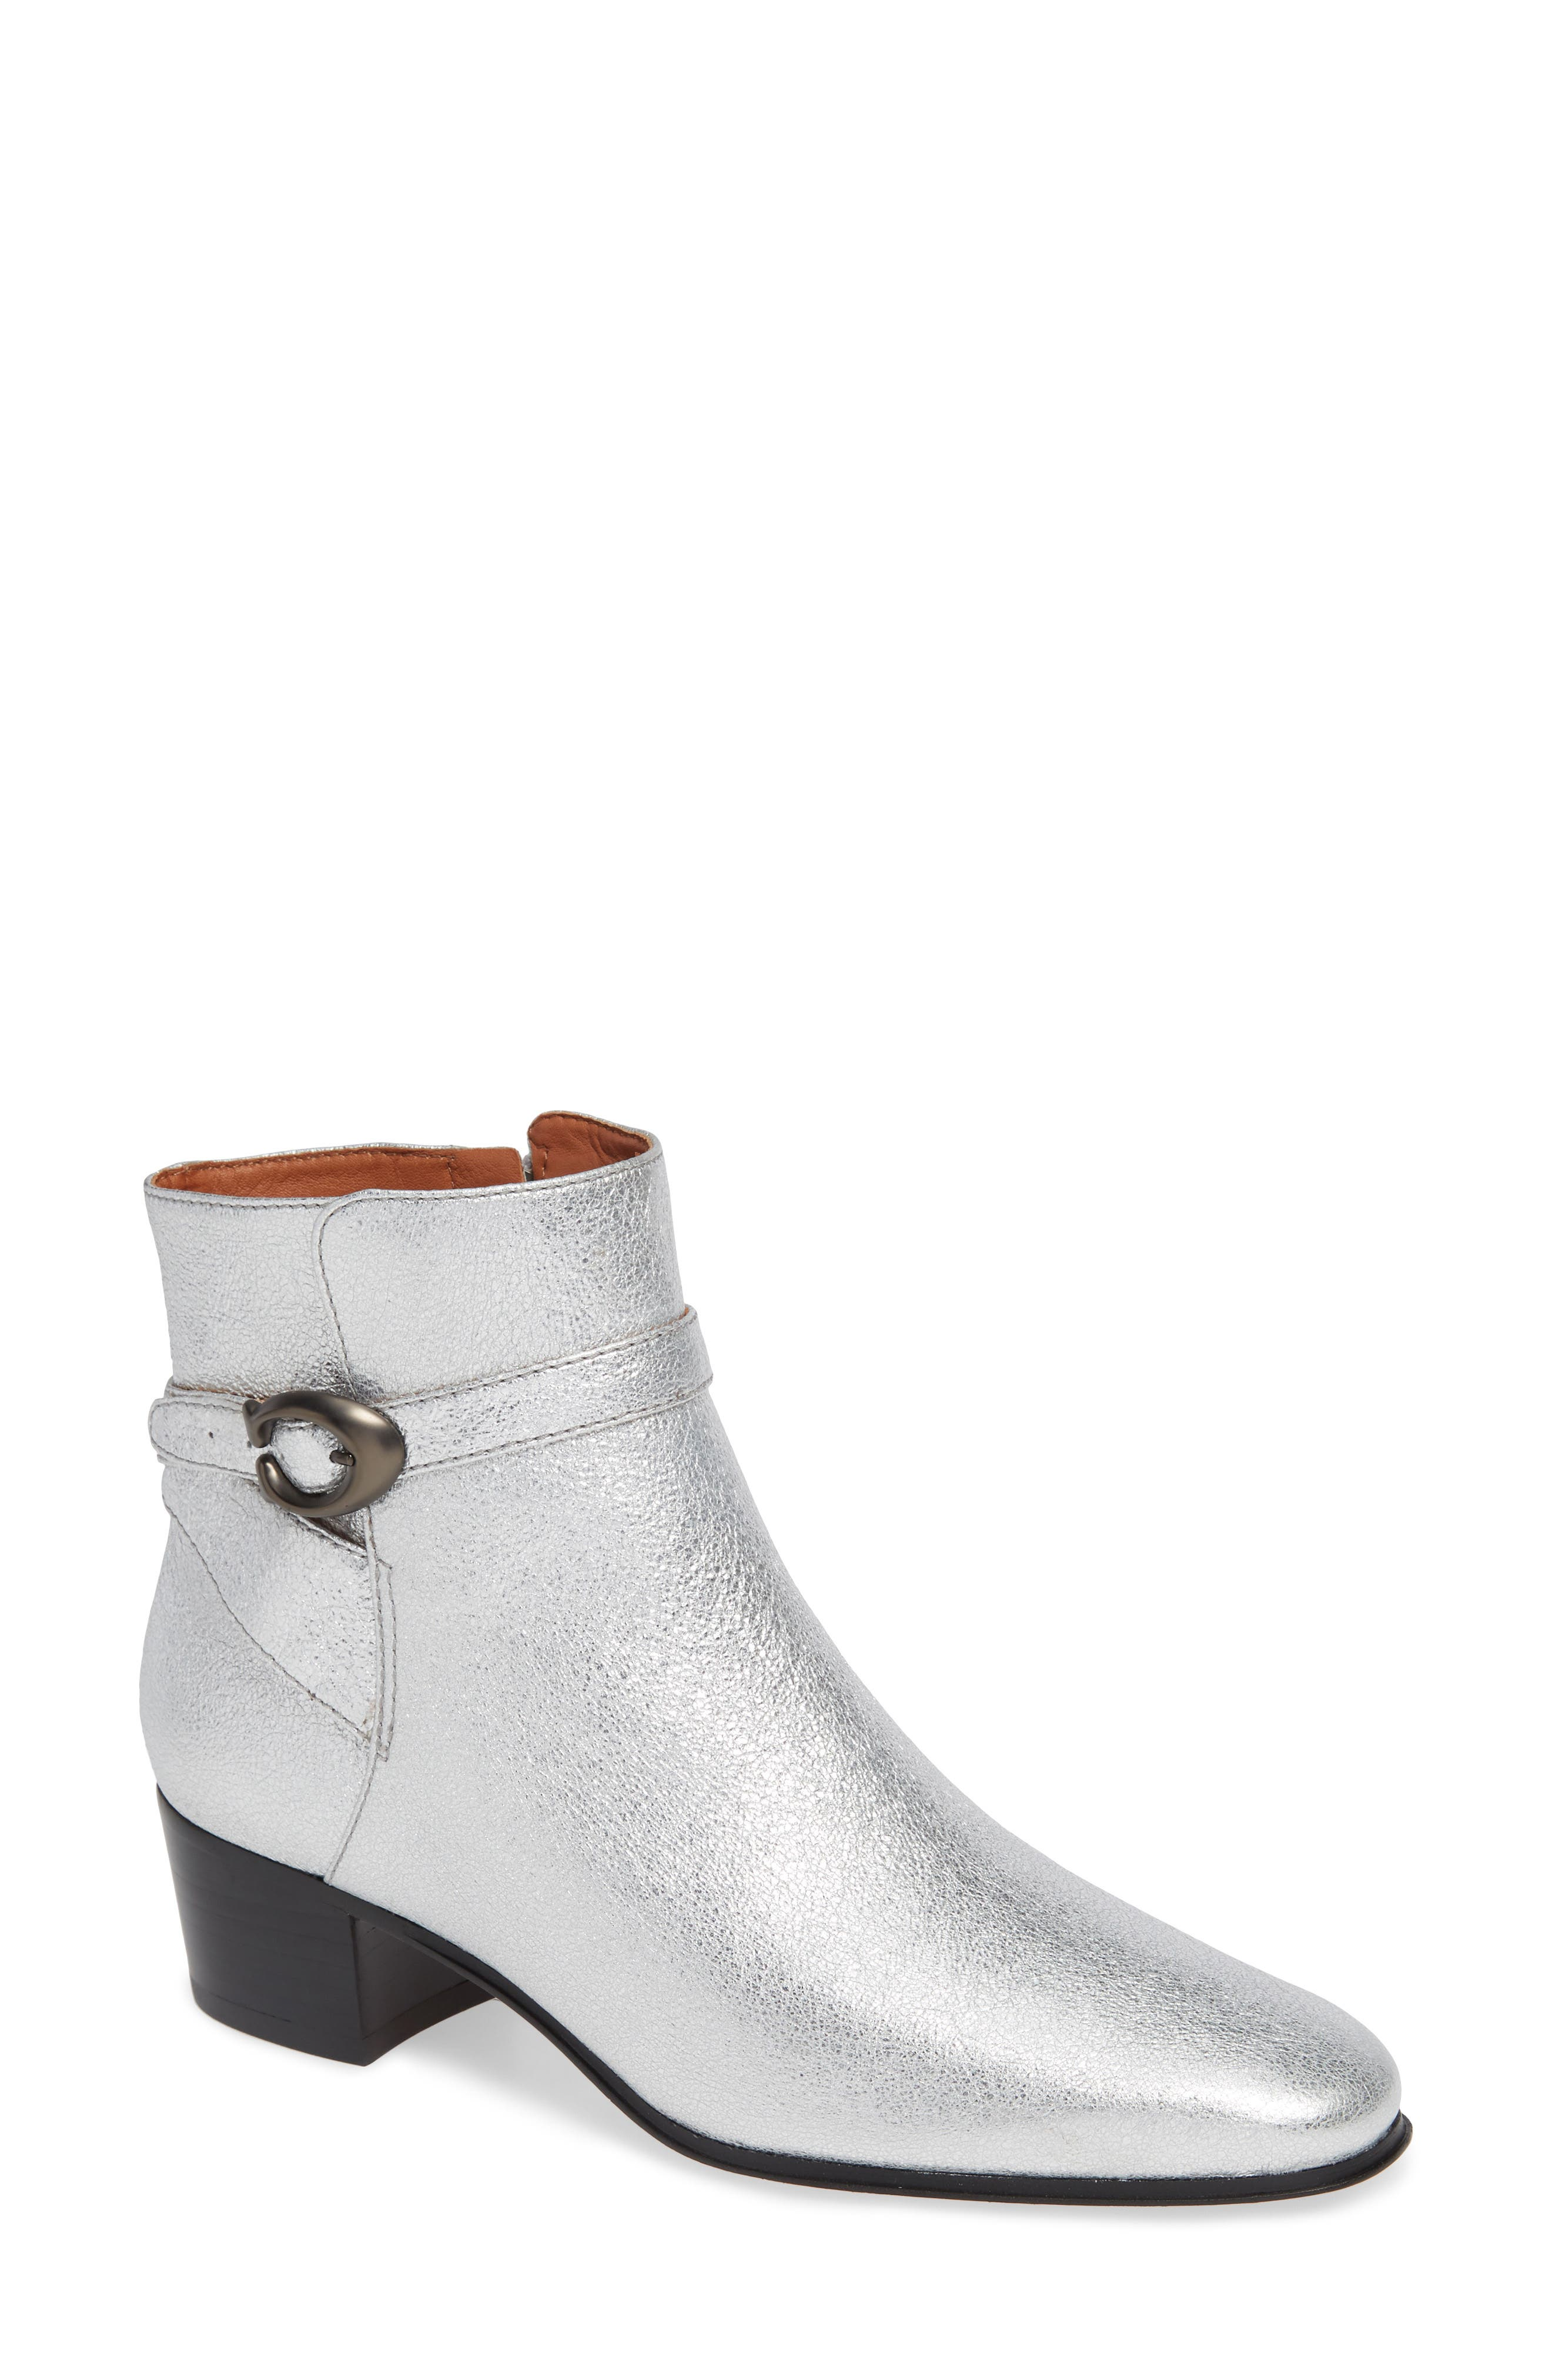 Chrystie Bootie,                             Main thumbnail 1, color,                             SILVER LEATHER